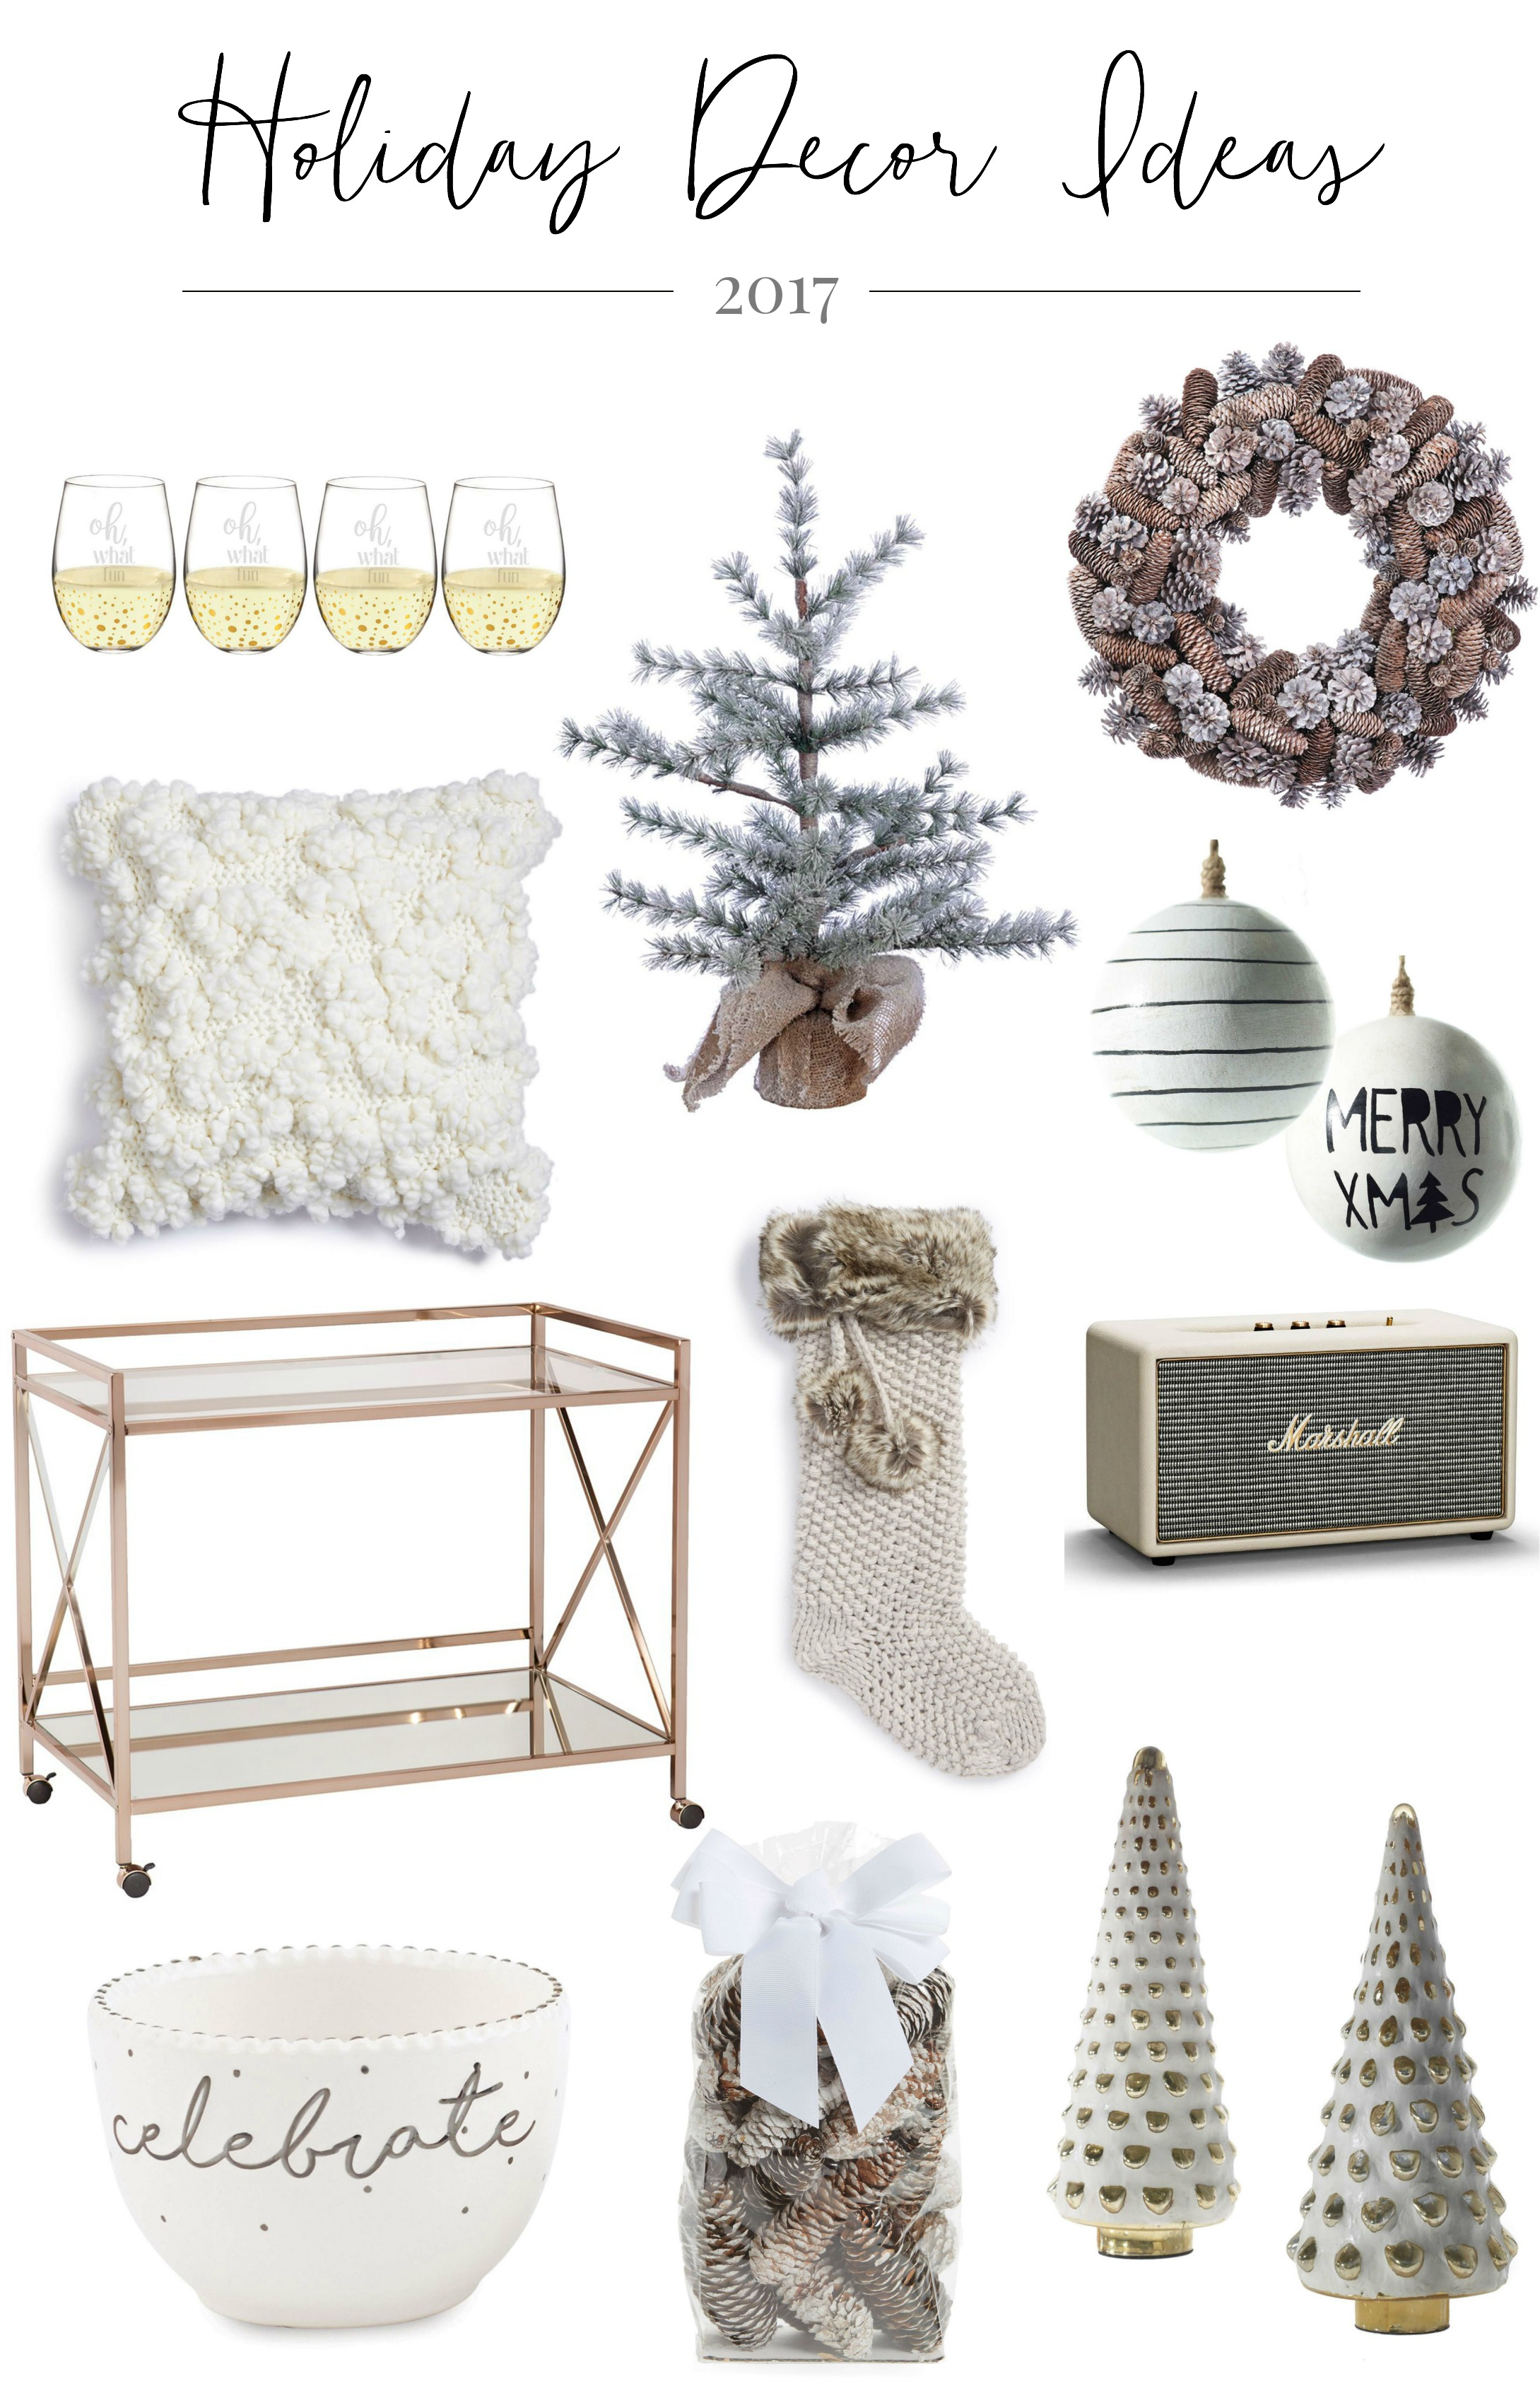 Christmas decorating | Oh what fun wine glasses | Mini burlap wrapped pine tree | Pinecone wreath | Knit Pillow | Merry XMAS wooden ball ornament | Bar cart | Knit faux fur stocking | Bluetooth speaker | Celebrate dip cup | Pinecone Potpourri | Glass tree